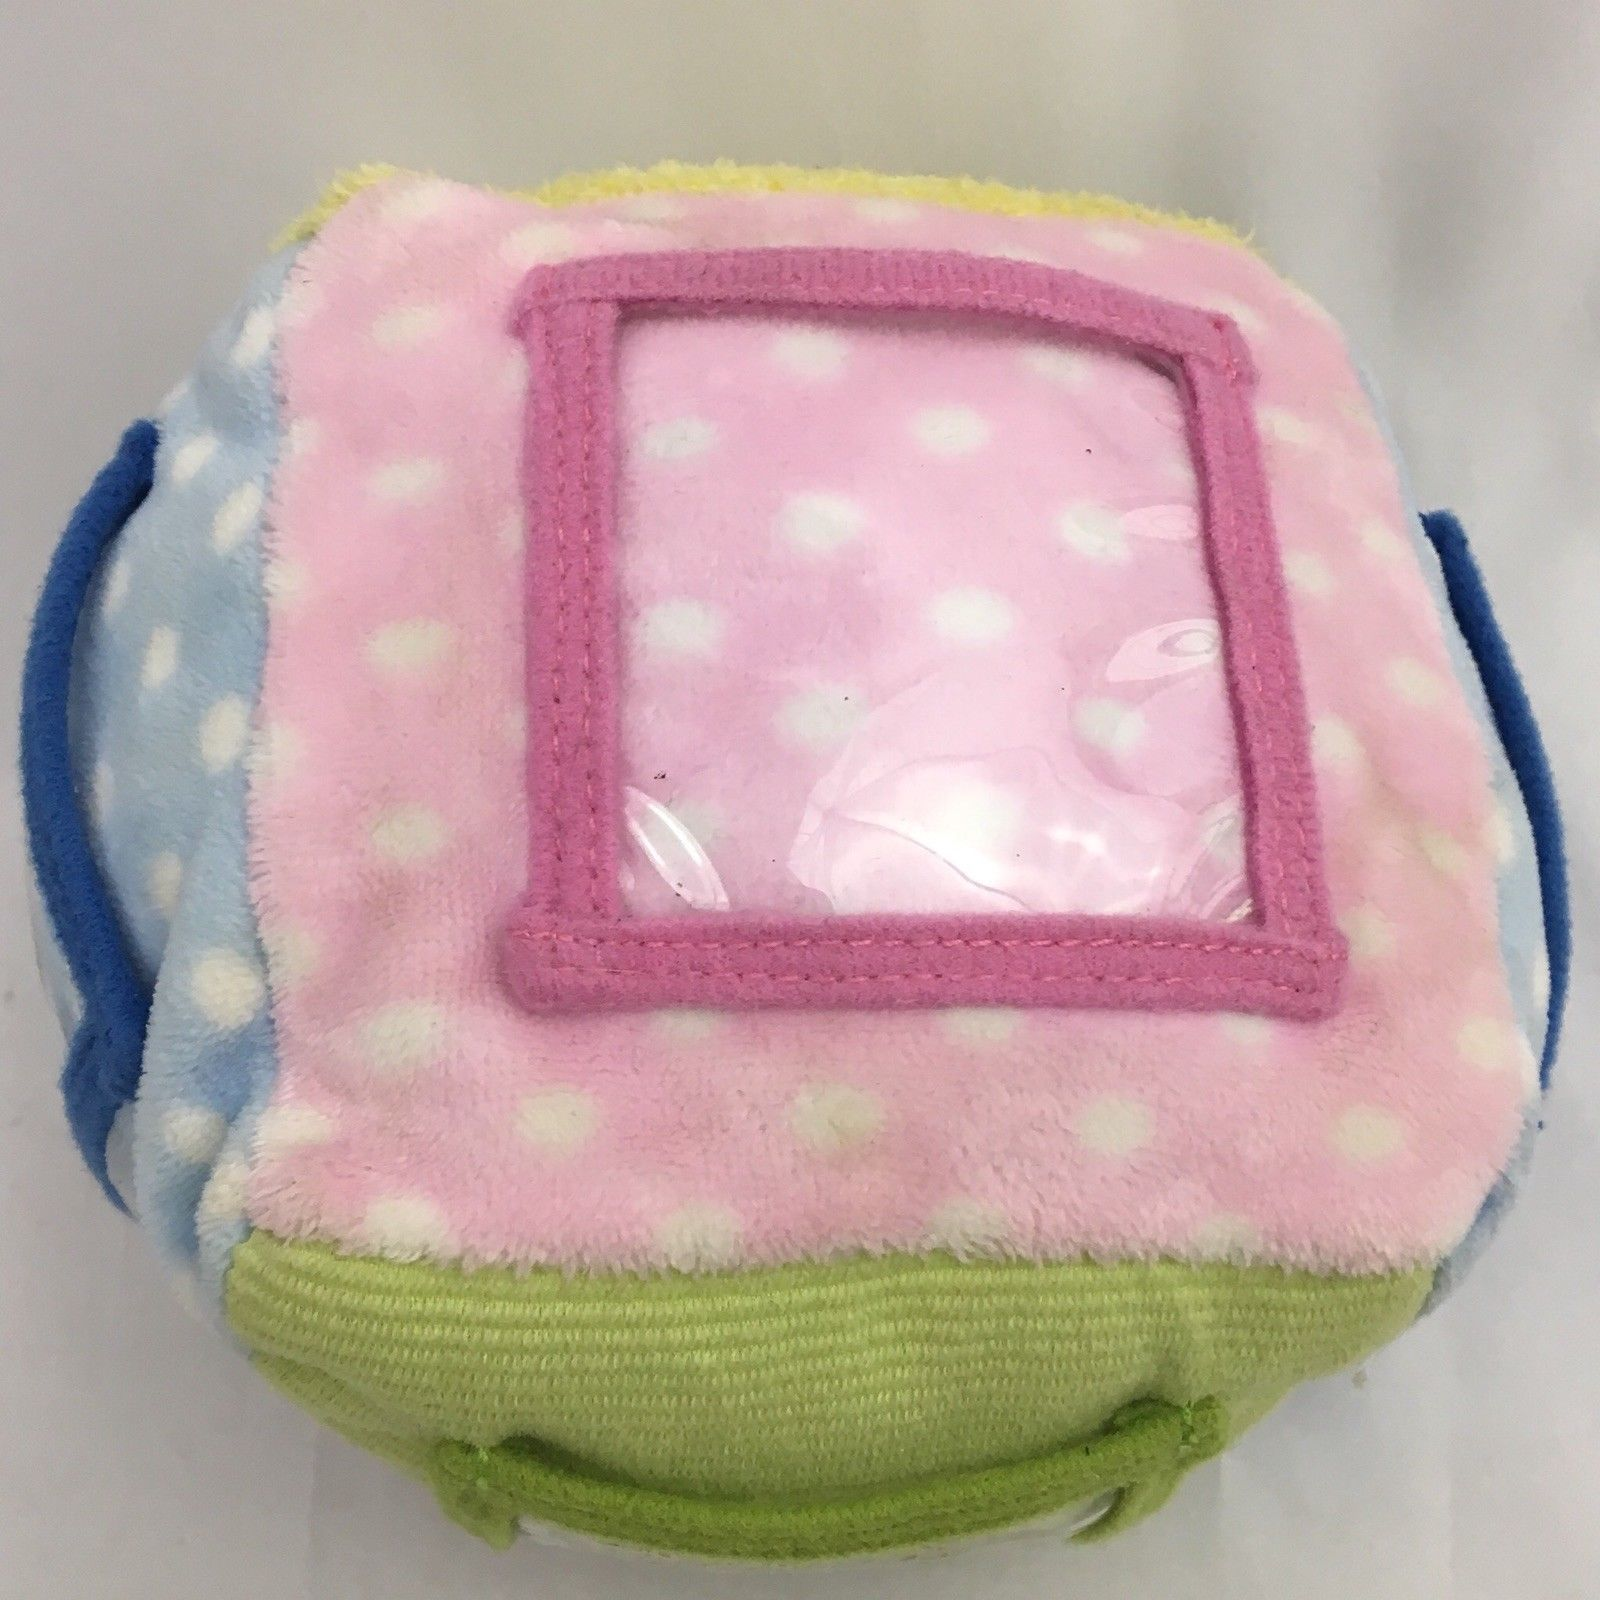 Kids Preferred Photo Picture Cube Rattle Plush Baby Toy image 3